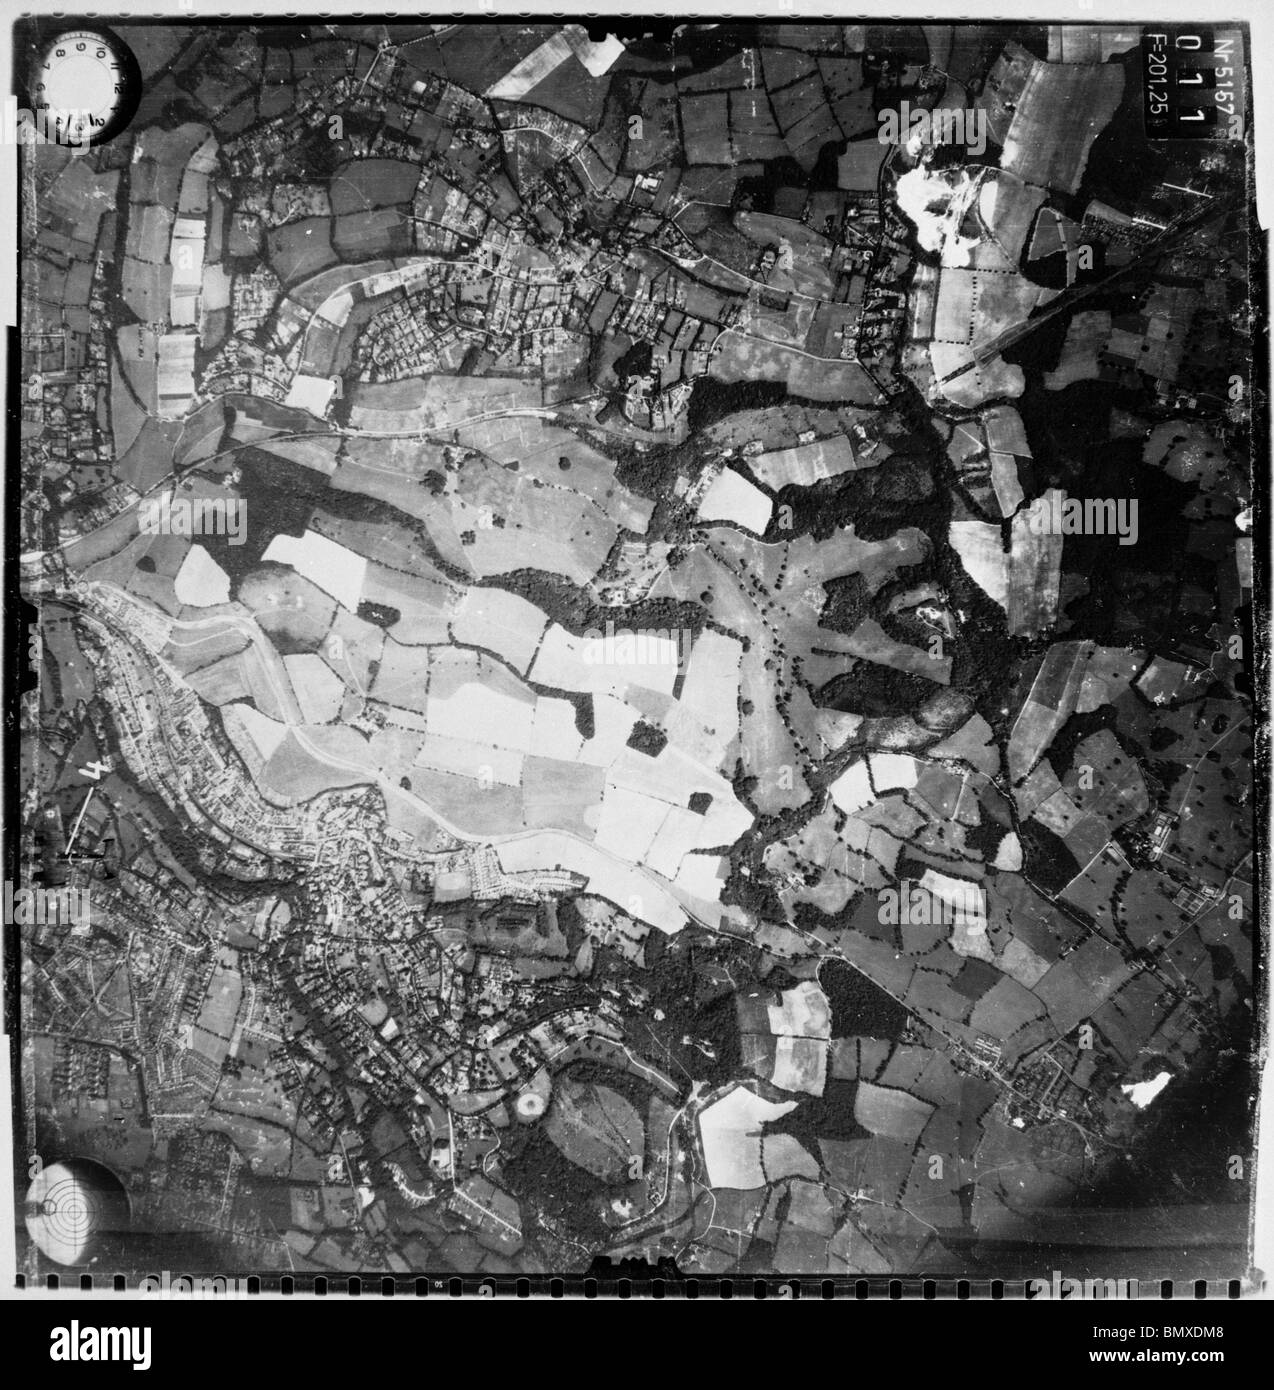 Kenley - Surrey 24th August 1940 Bomb Attack on Kenley RAF Station - Stock Image